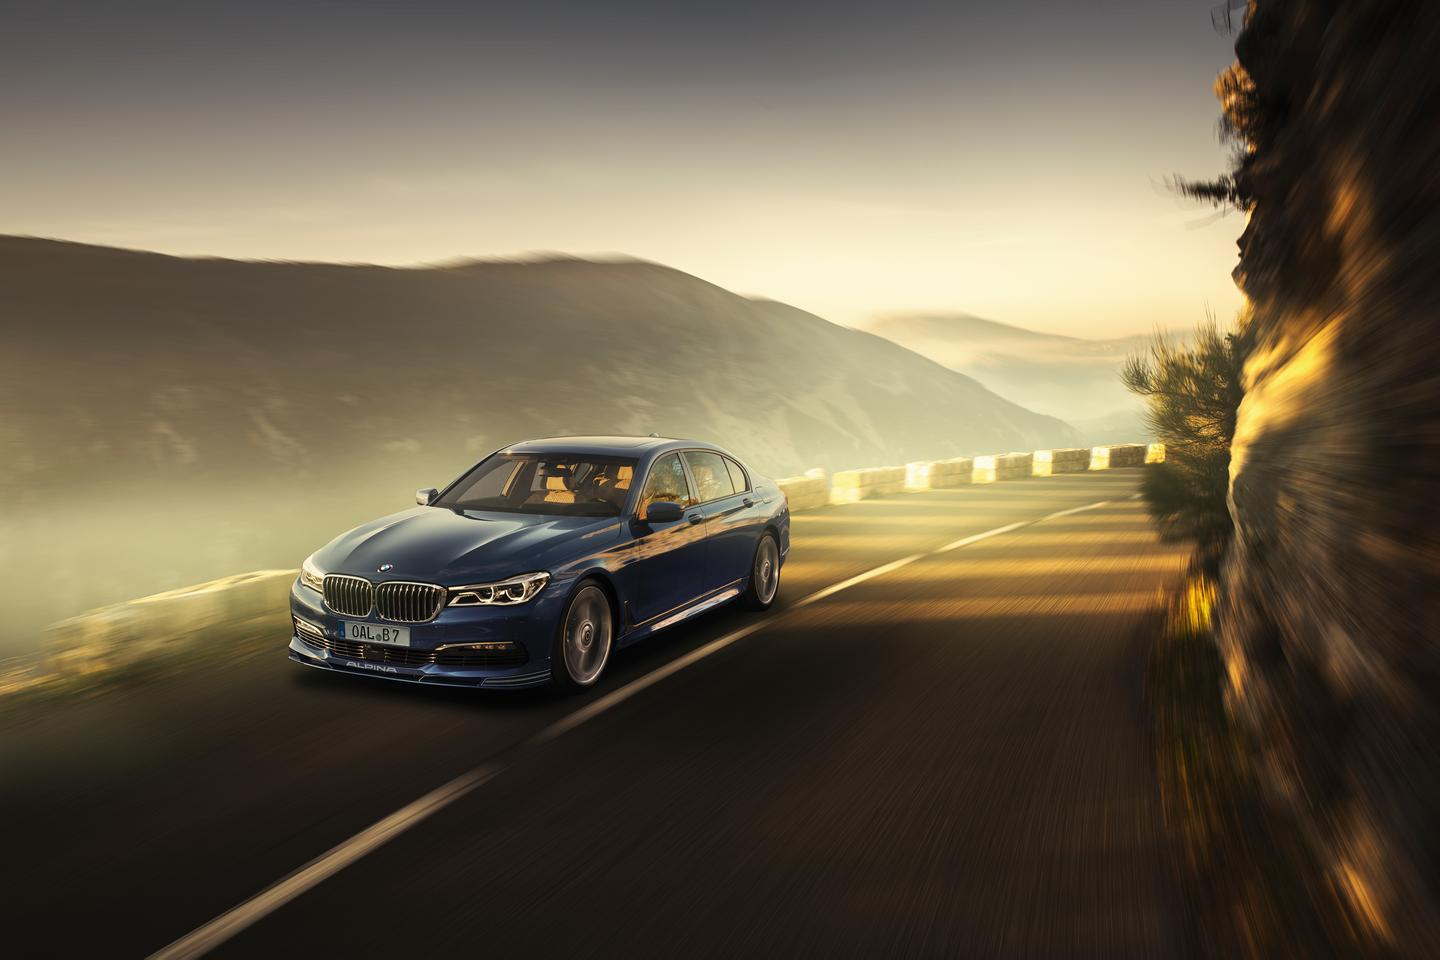 The Alpina B7 might be subtle on the outside, but it's packing some serious firepower under the hood